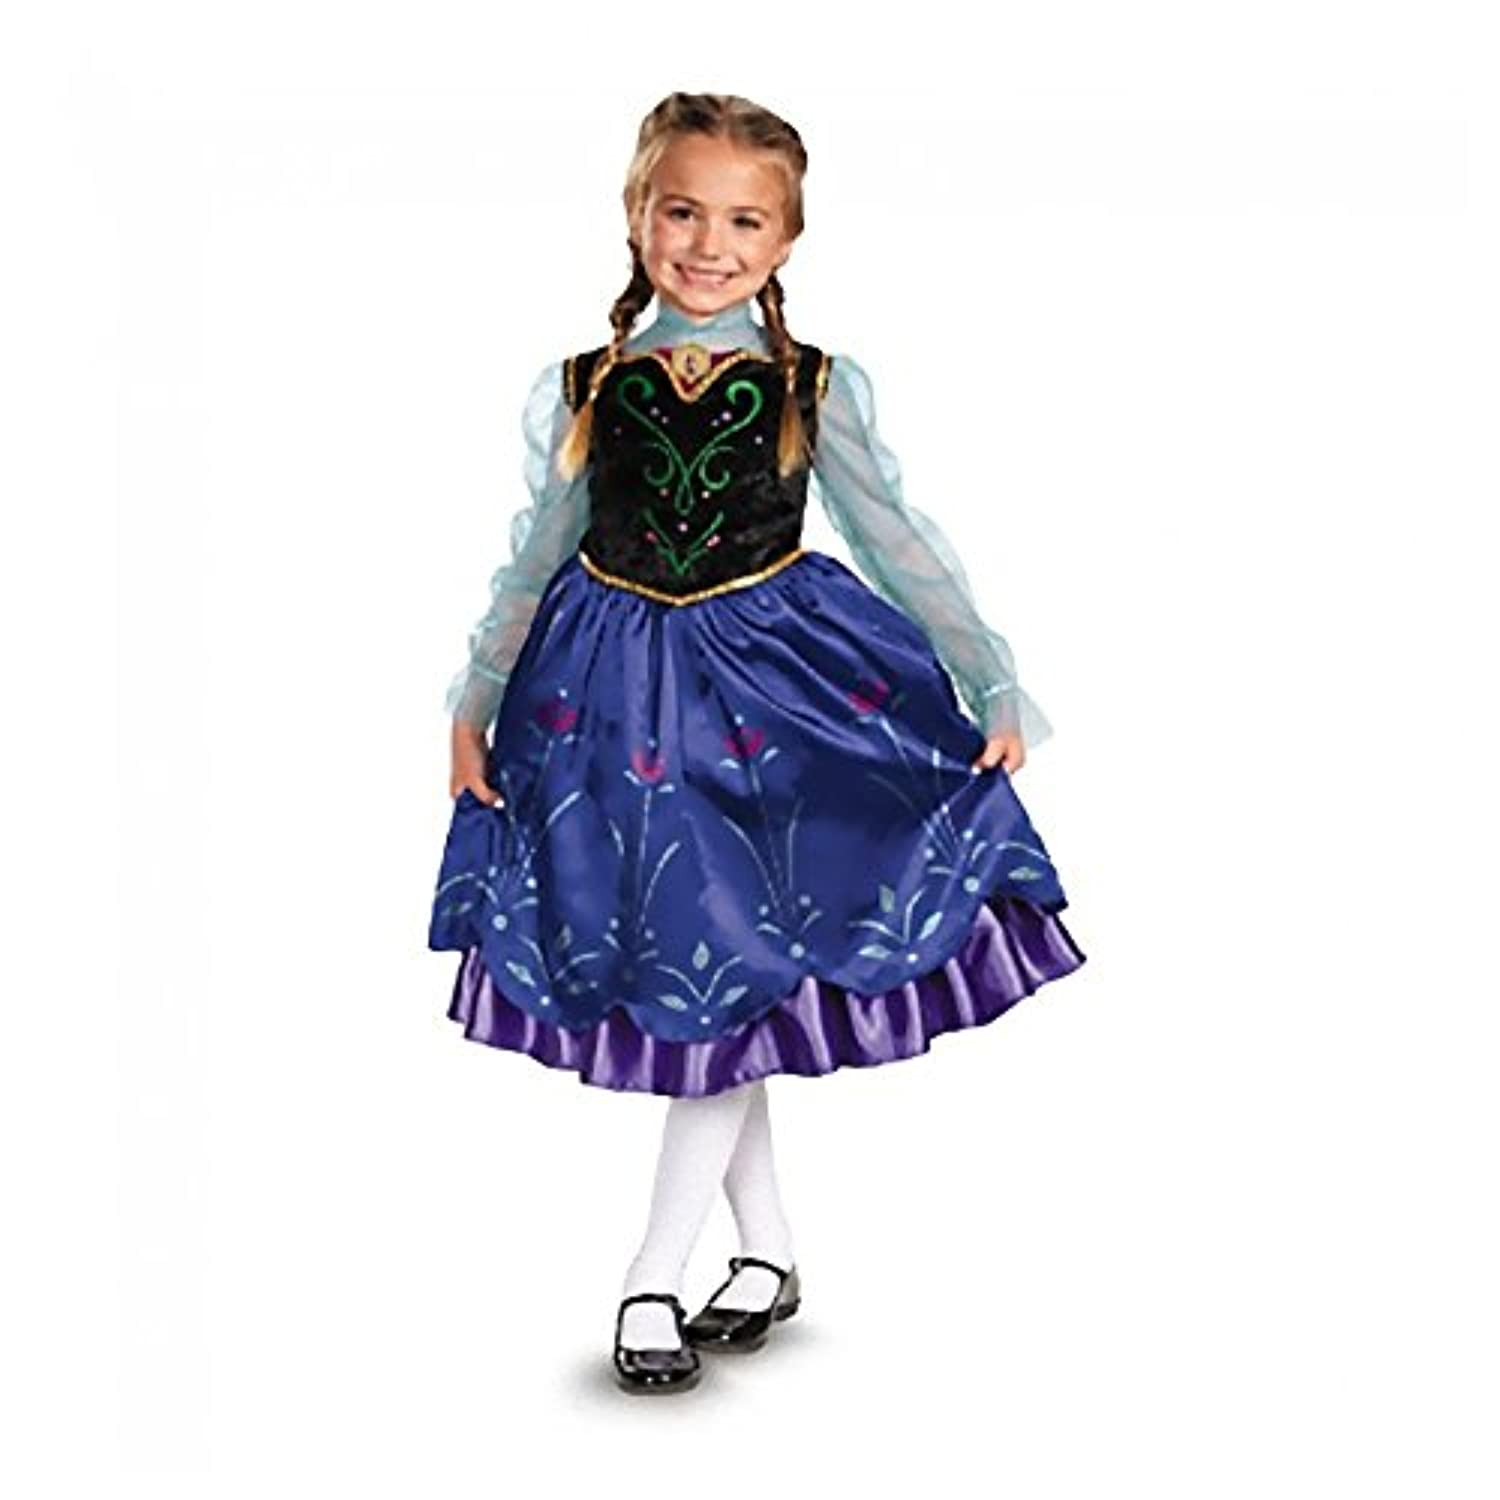 [Disguiseコスチューム]Disguise Costumes Disney Frozen Anna Dress Costume Wig Small 4 5 6 6x Petticoat Vest [並行輸入品]